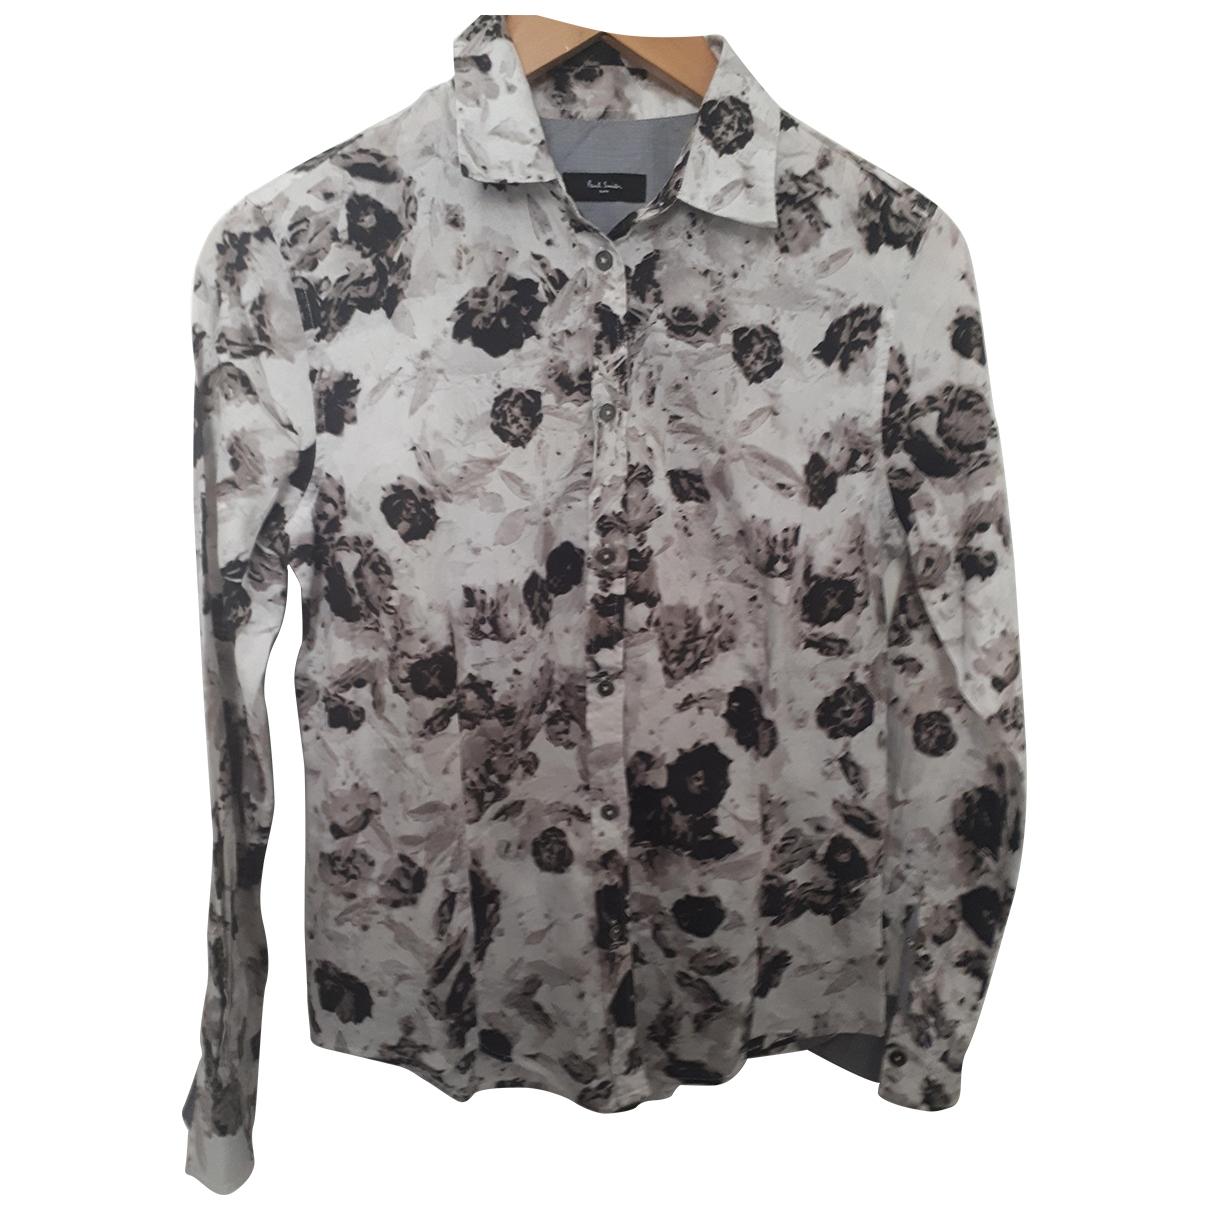 Paul Smith \N Top in  Weiss Baumwolle